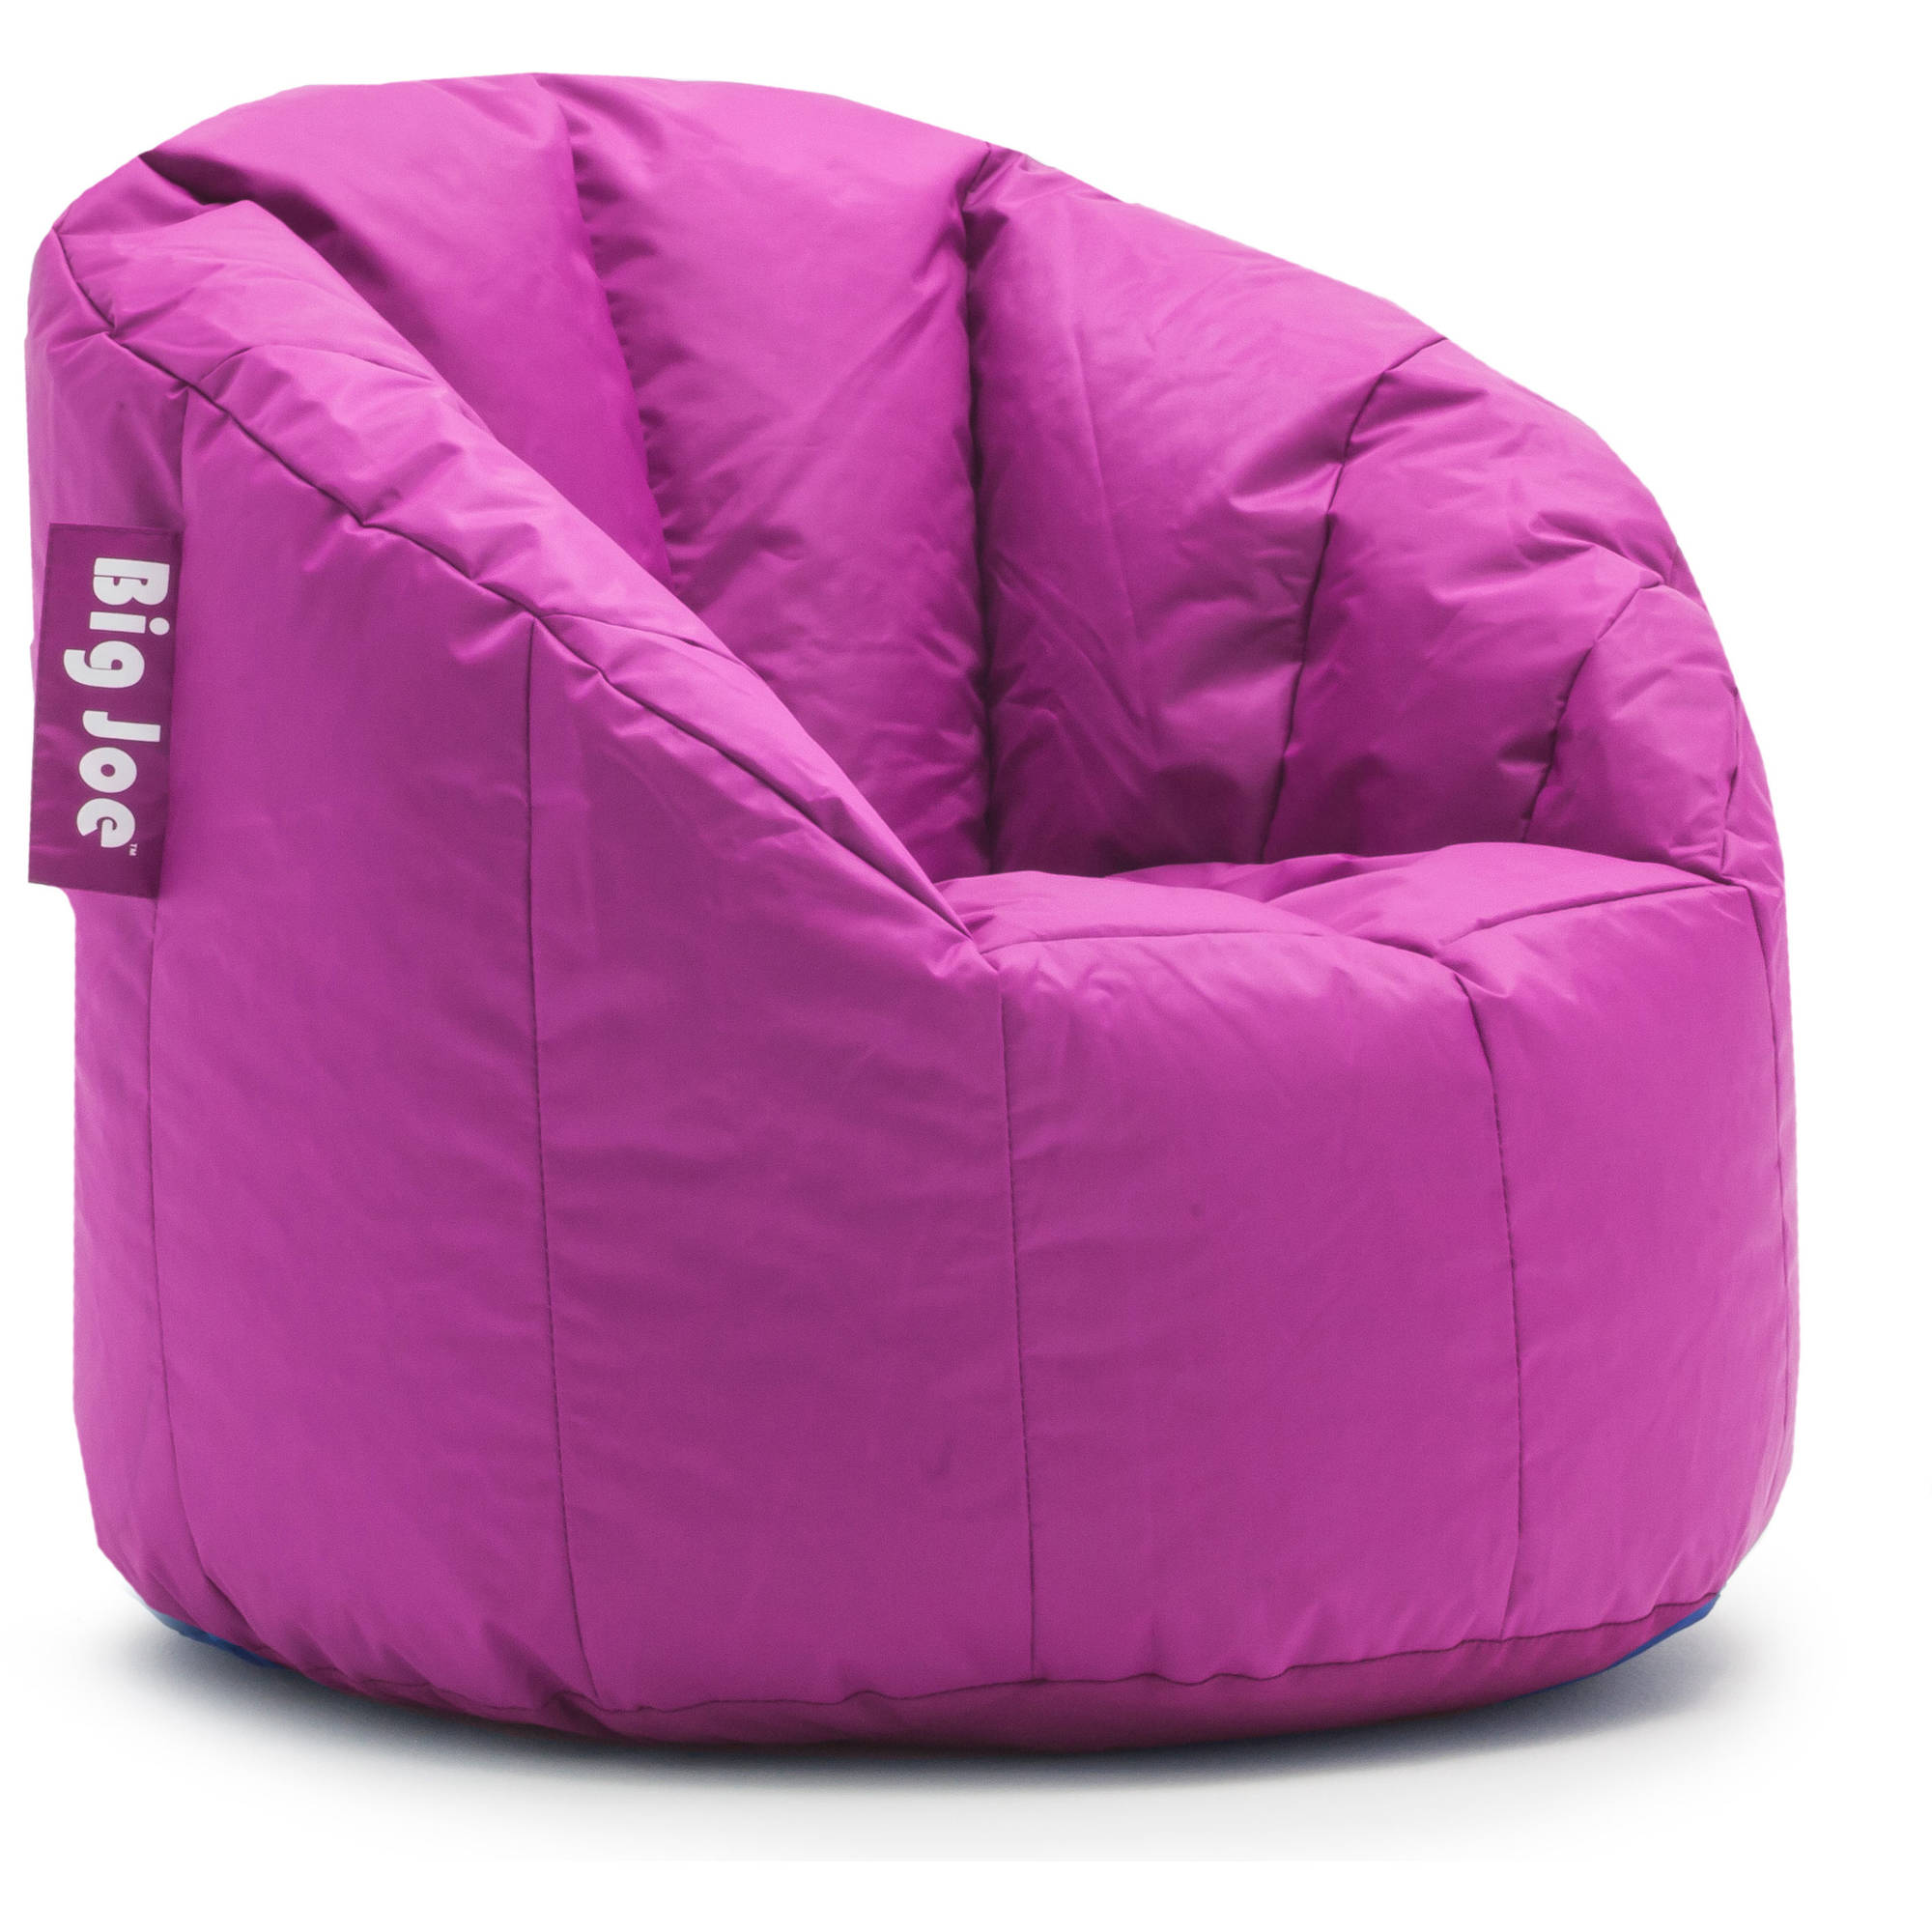 Bean bag chairs for teenage girls - Bean Bag Chairs For Teenage Girls 36